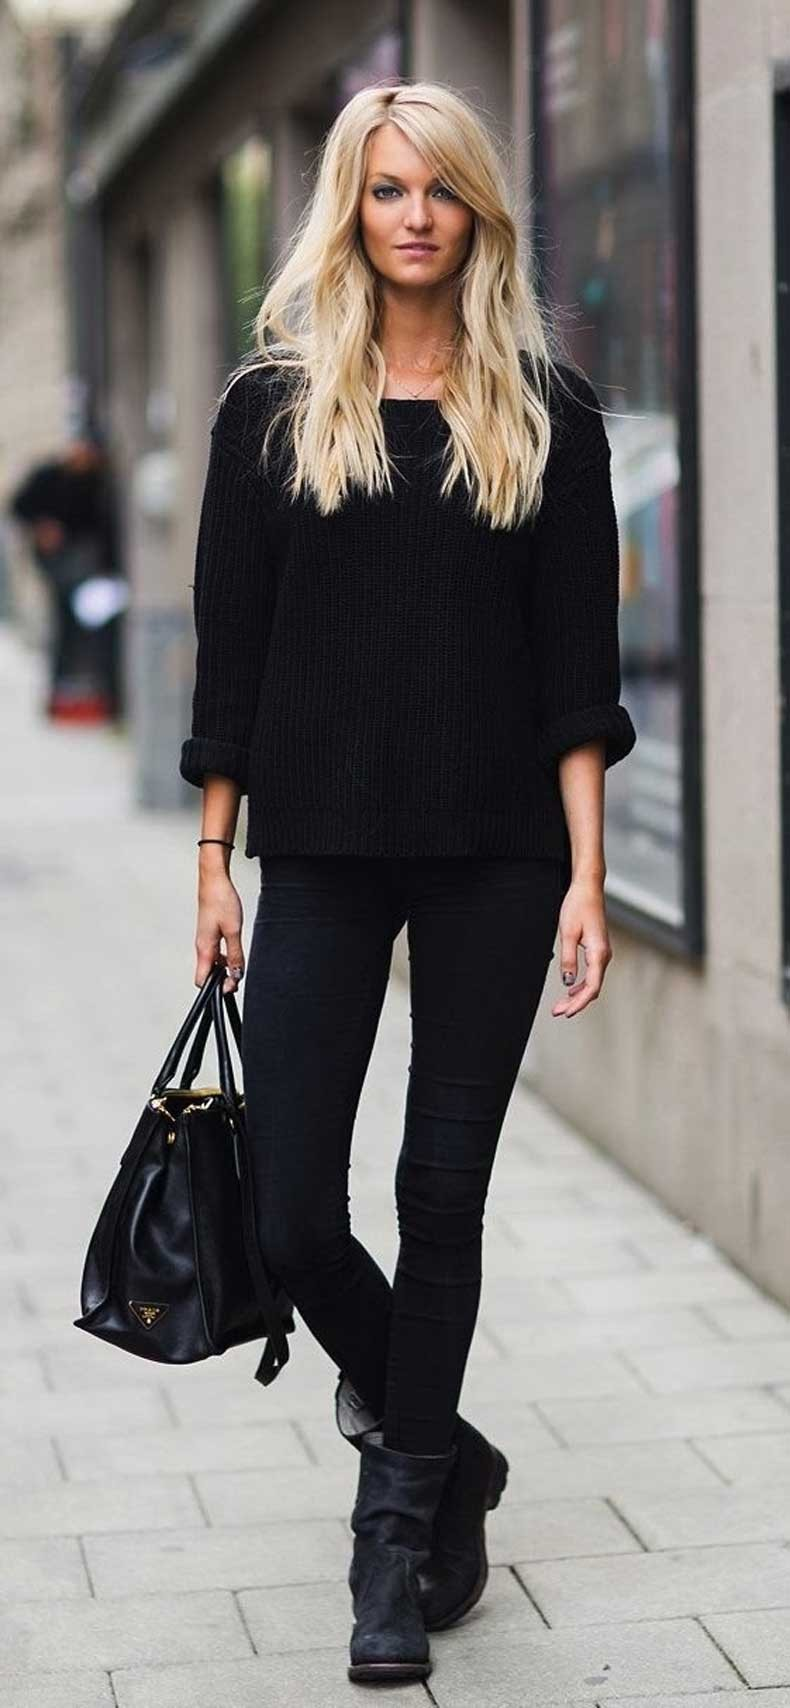 Chic-Street-Style-Looks-2014-12